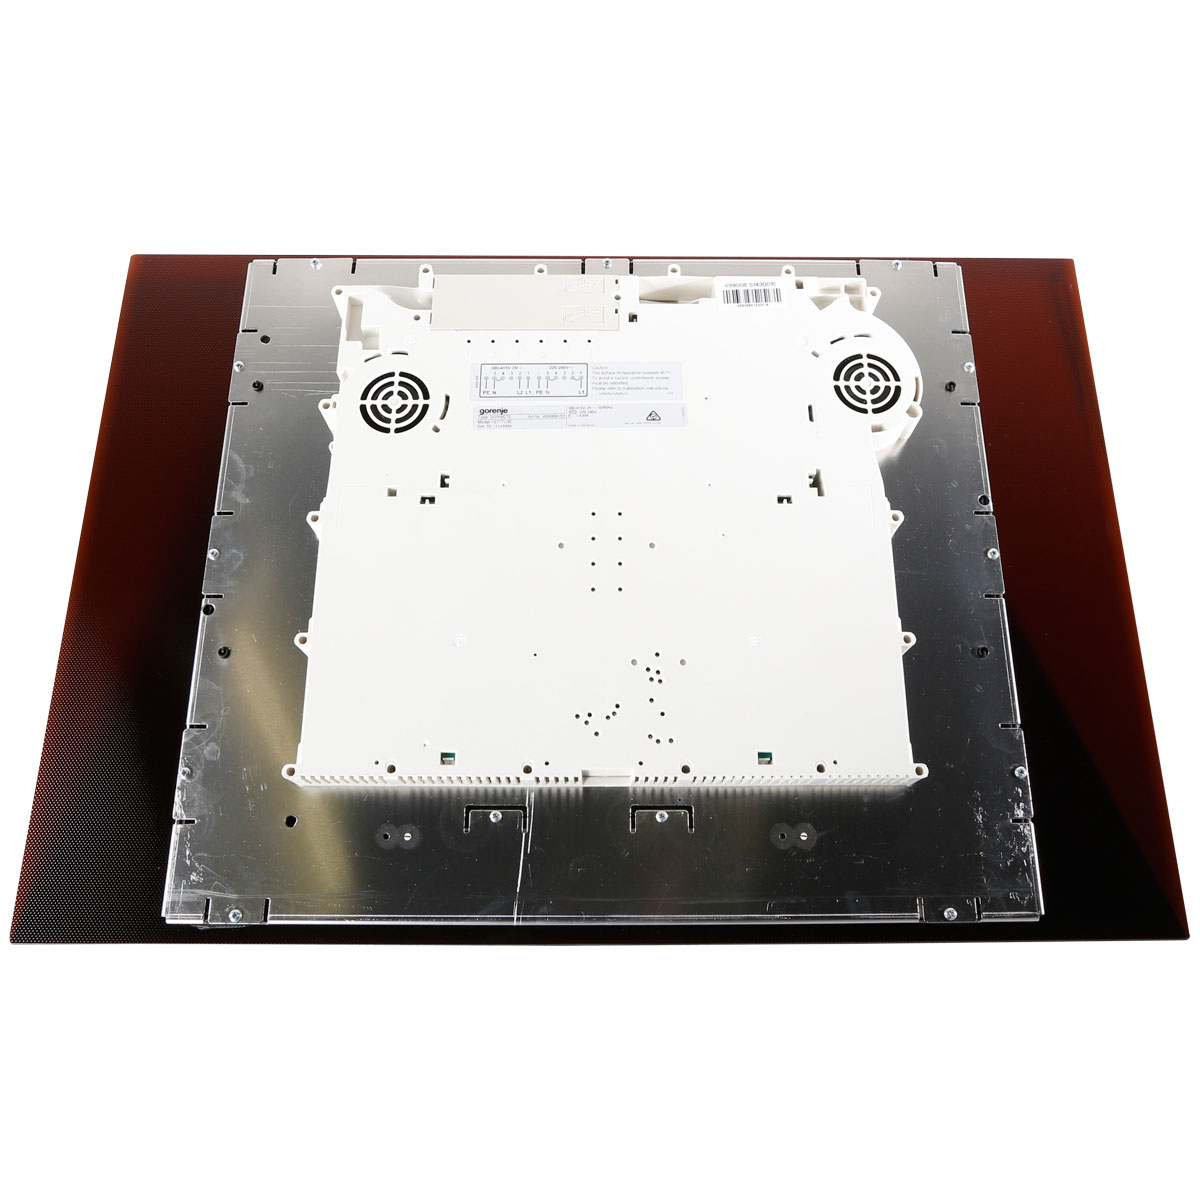 Gorenje IS777USC 75cm Induction Cooktop 33021